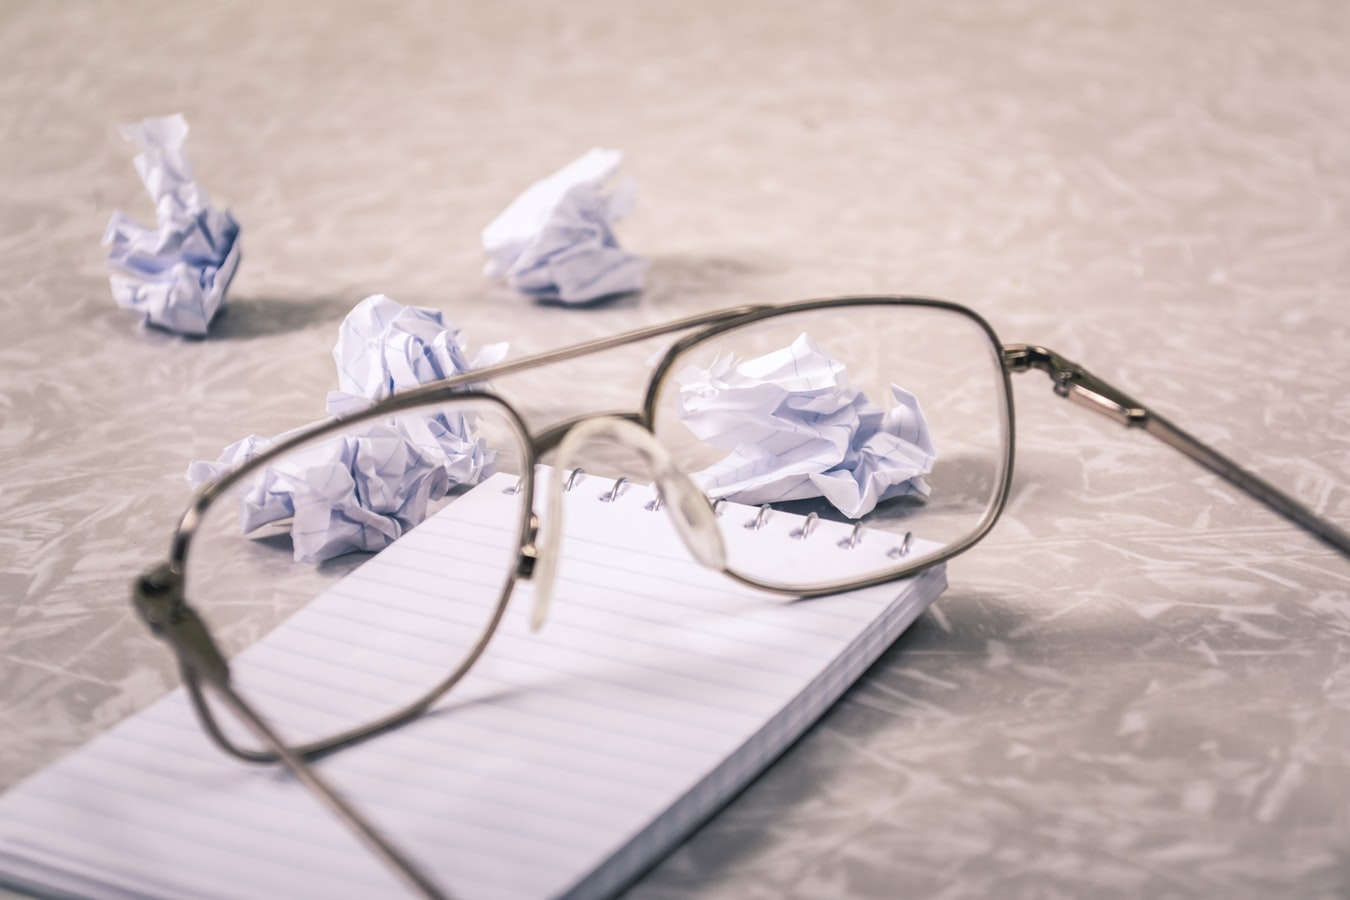 Writinf pad, eyeglasses, and waded sheets of paper